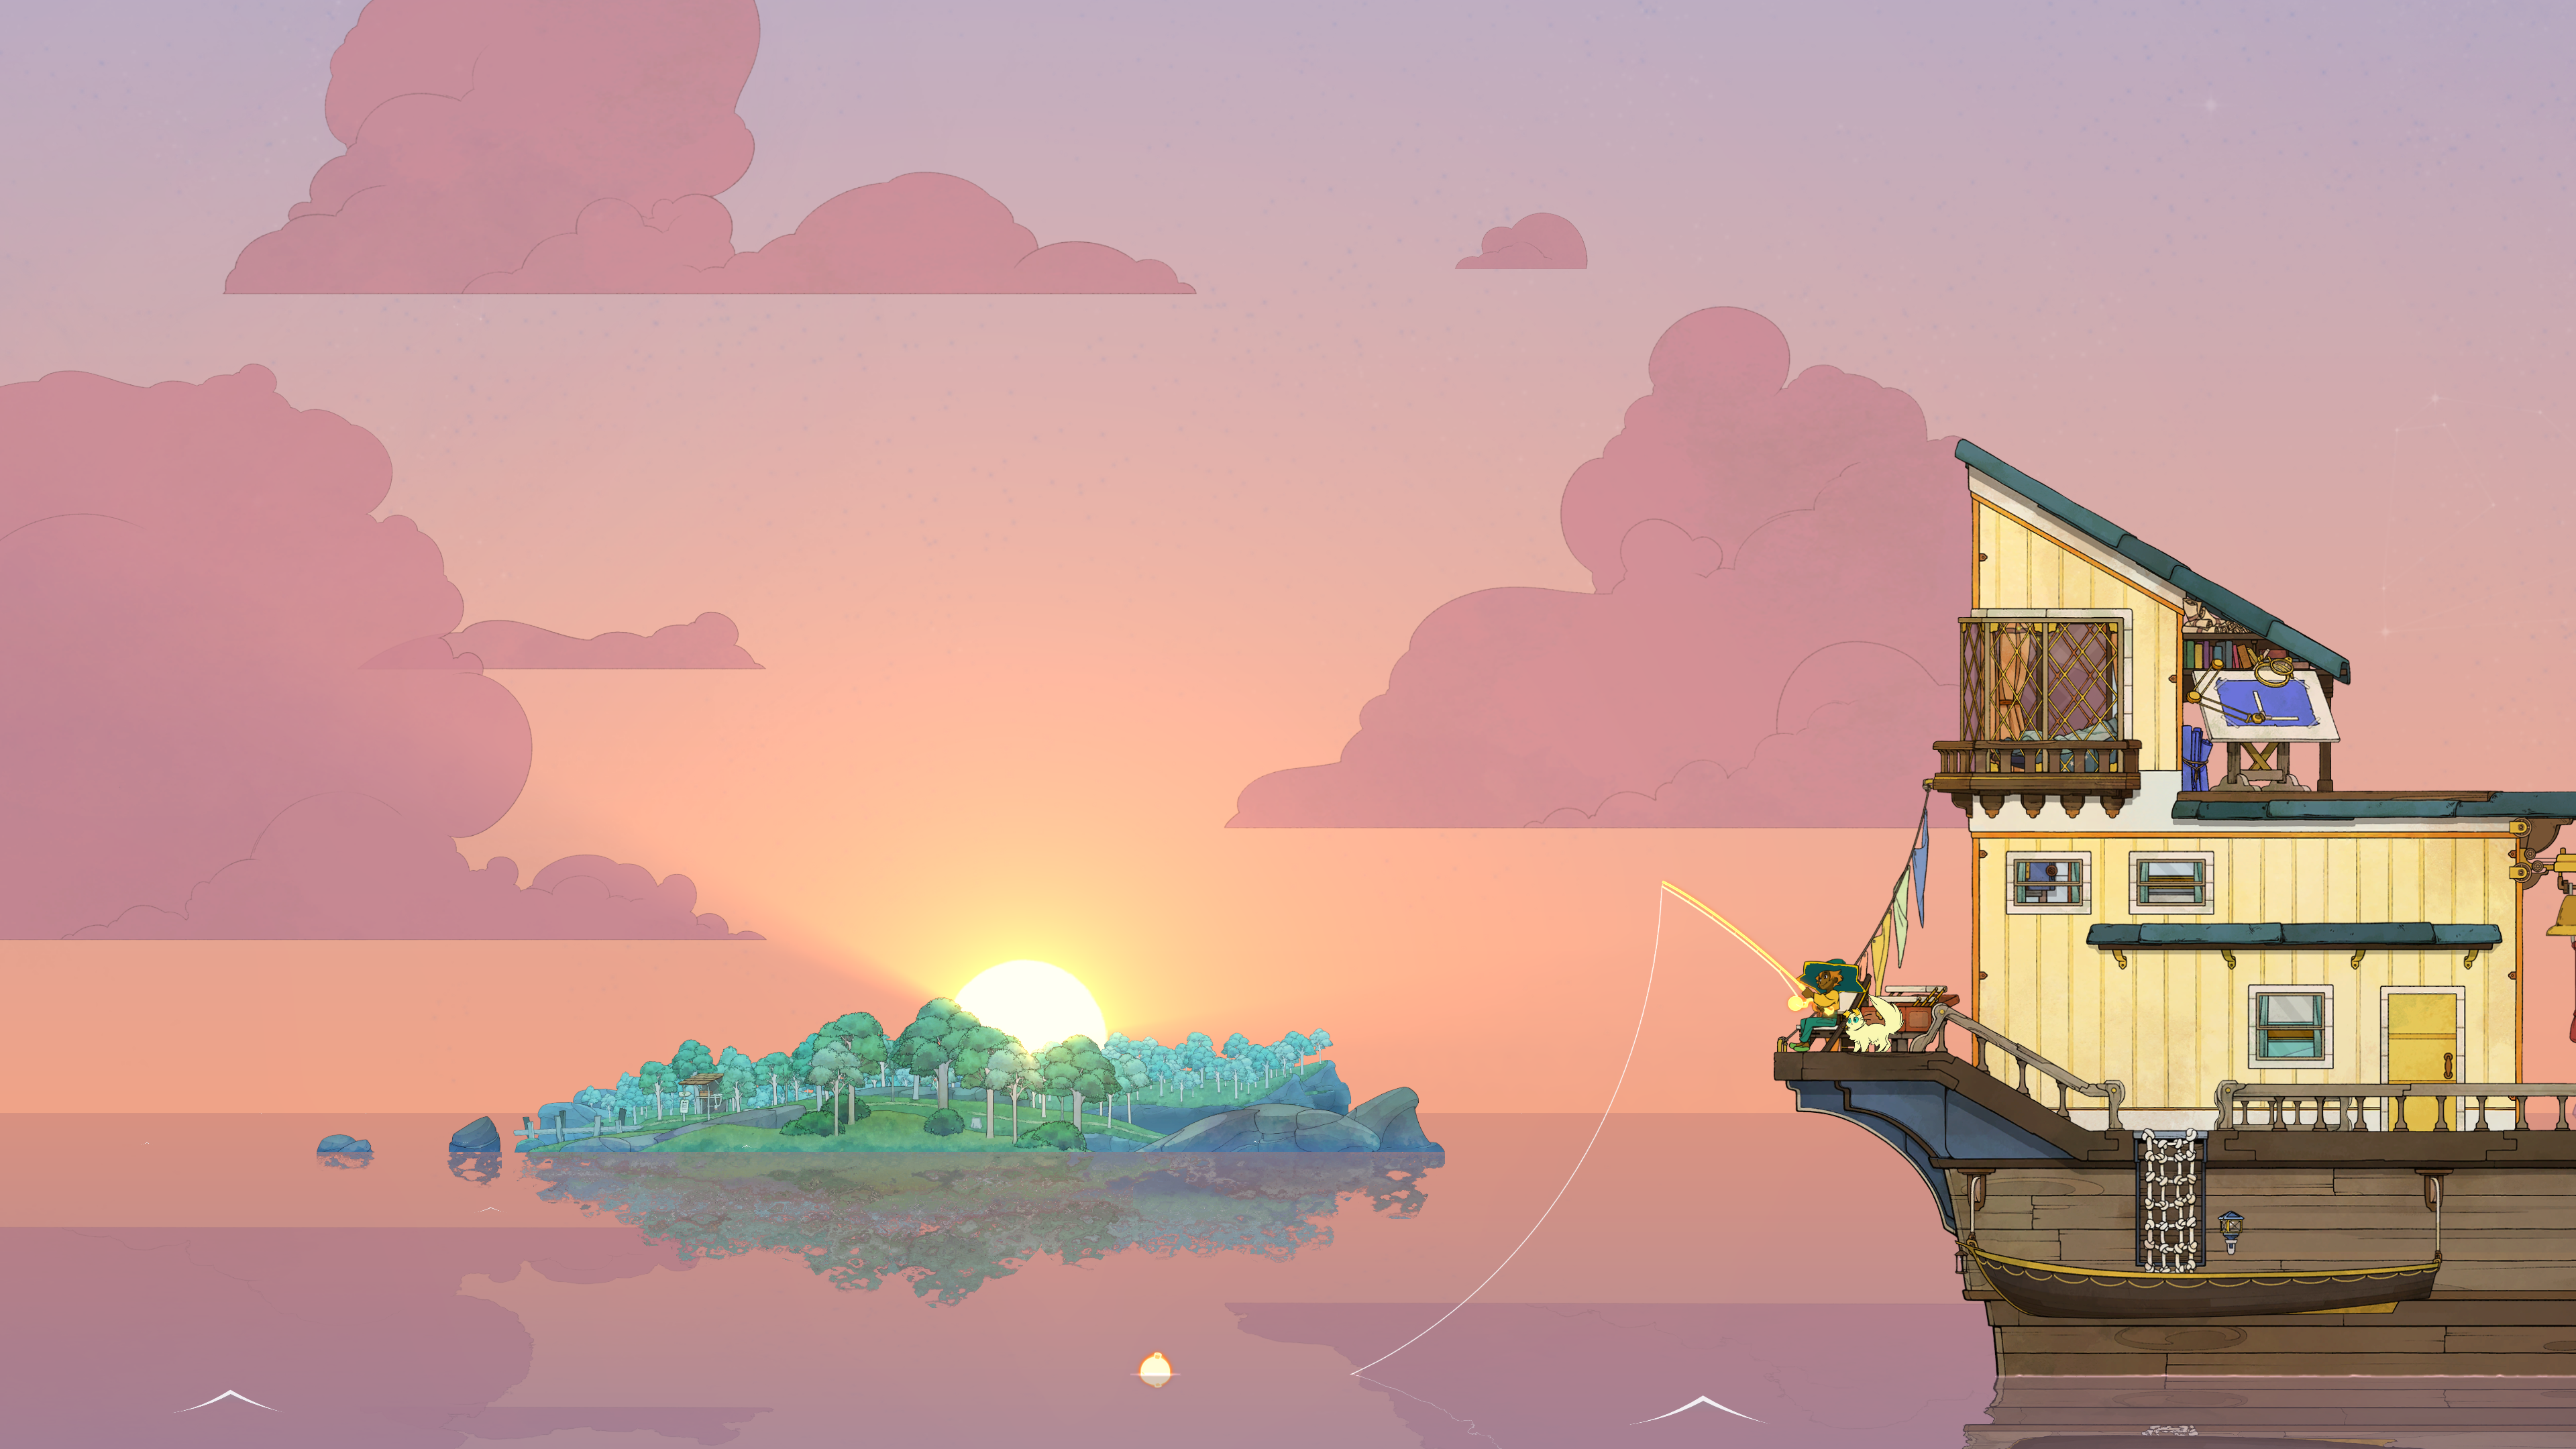 a ship with a person fishing, with an island in the center that the sun is setting behind, in Spiritfarer